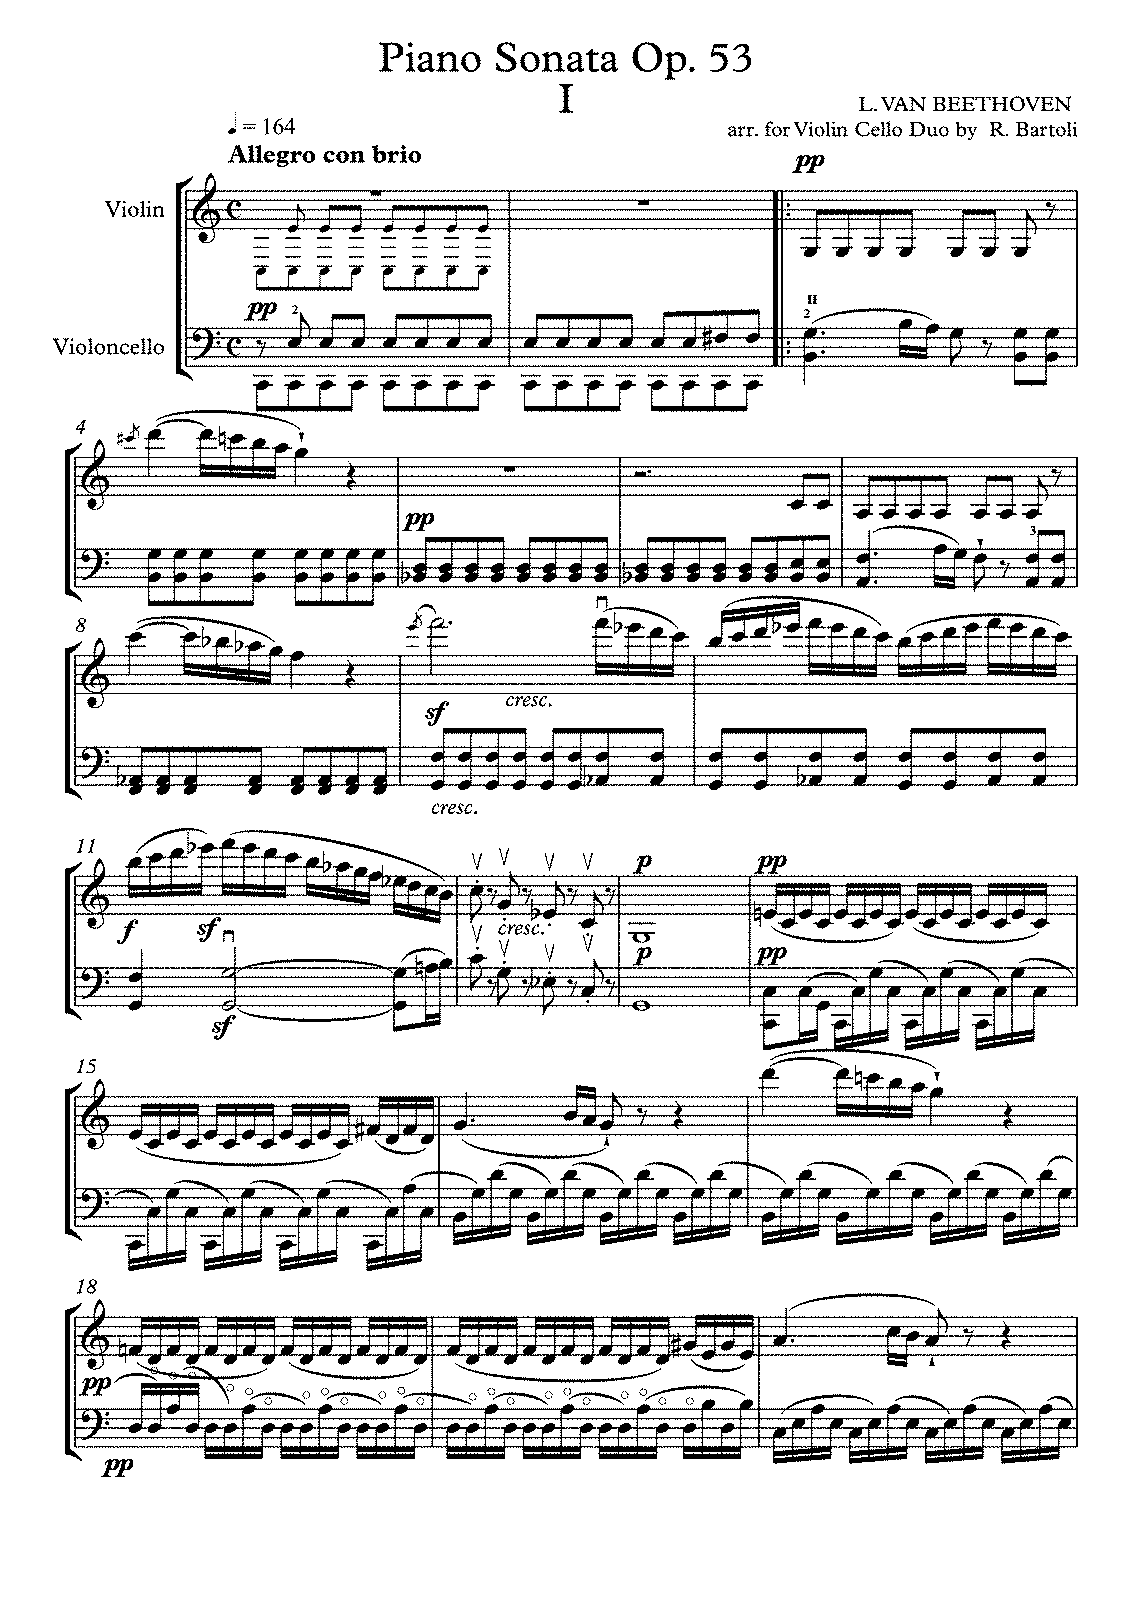 PMLP01474-Beethoven op53 vn vc first formatted draft - Full Score.pdf